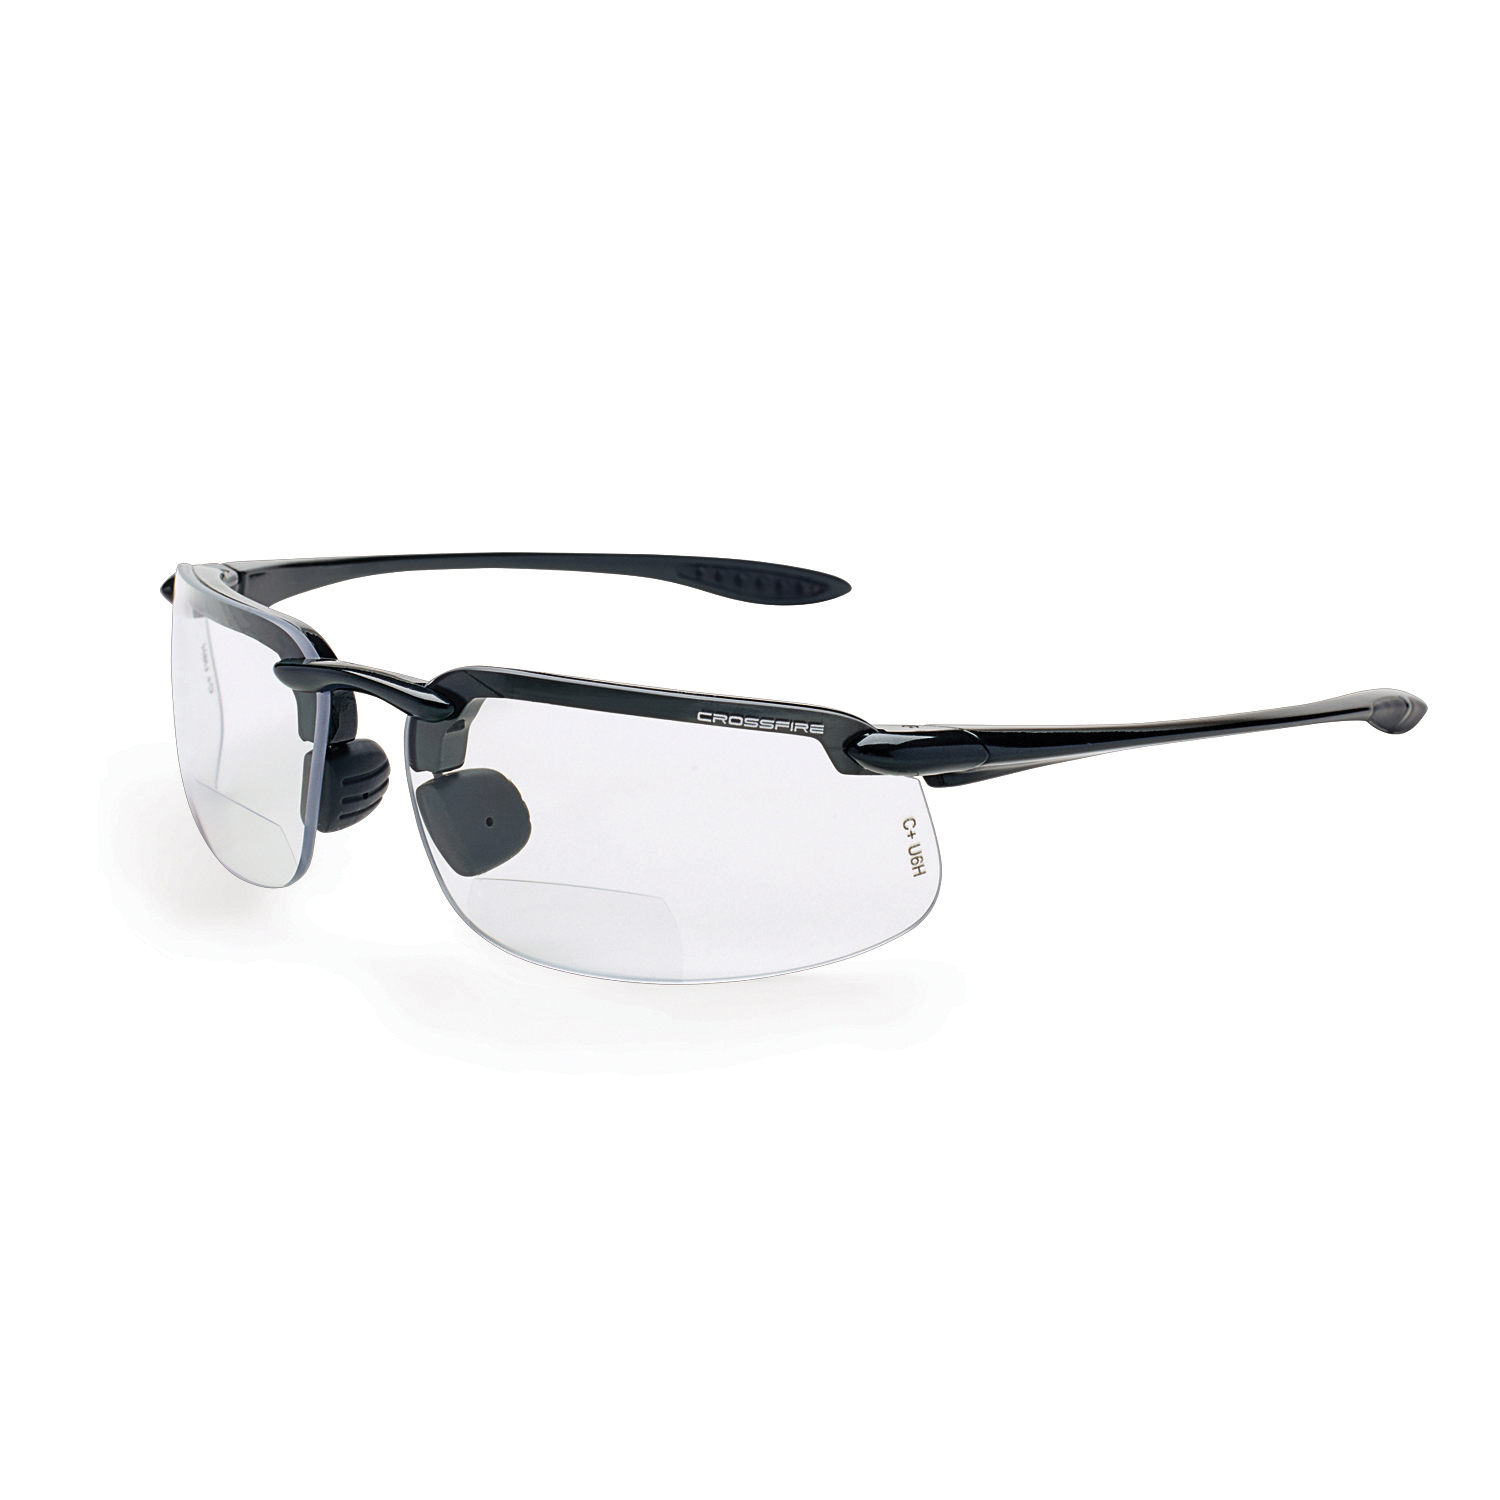 CrossFire® 216125 Bifocal Safety Glasses, +2.5 Diopter, Bronze Lens, Matte Black, TR90 Frame, Polycarbonate Lens, 99.9 % UV Protection, ANSI Z87.1